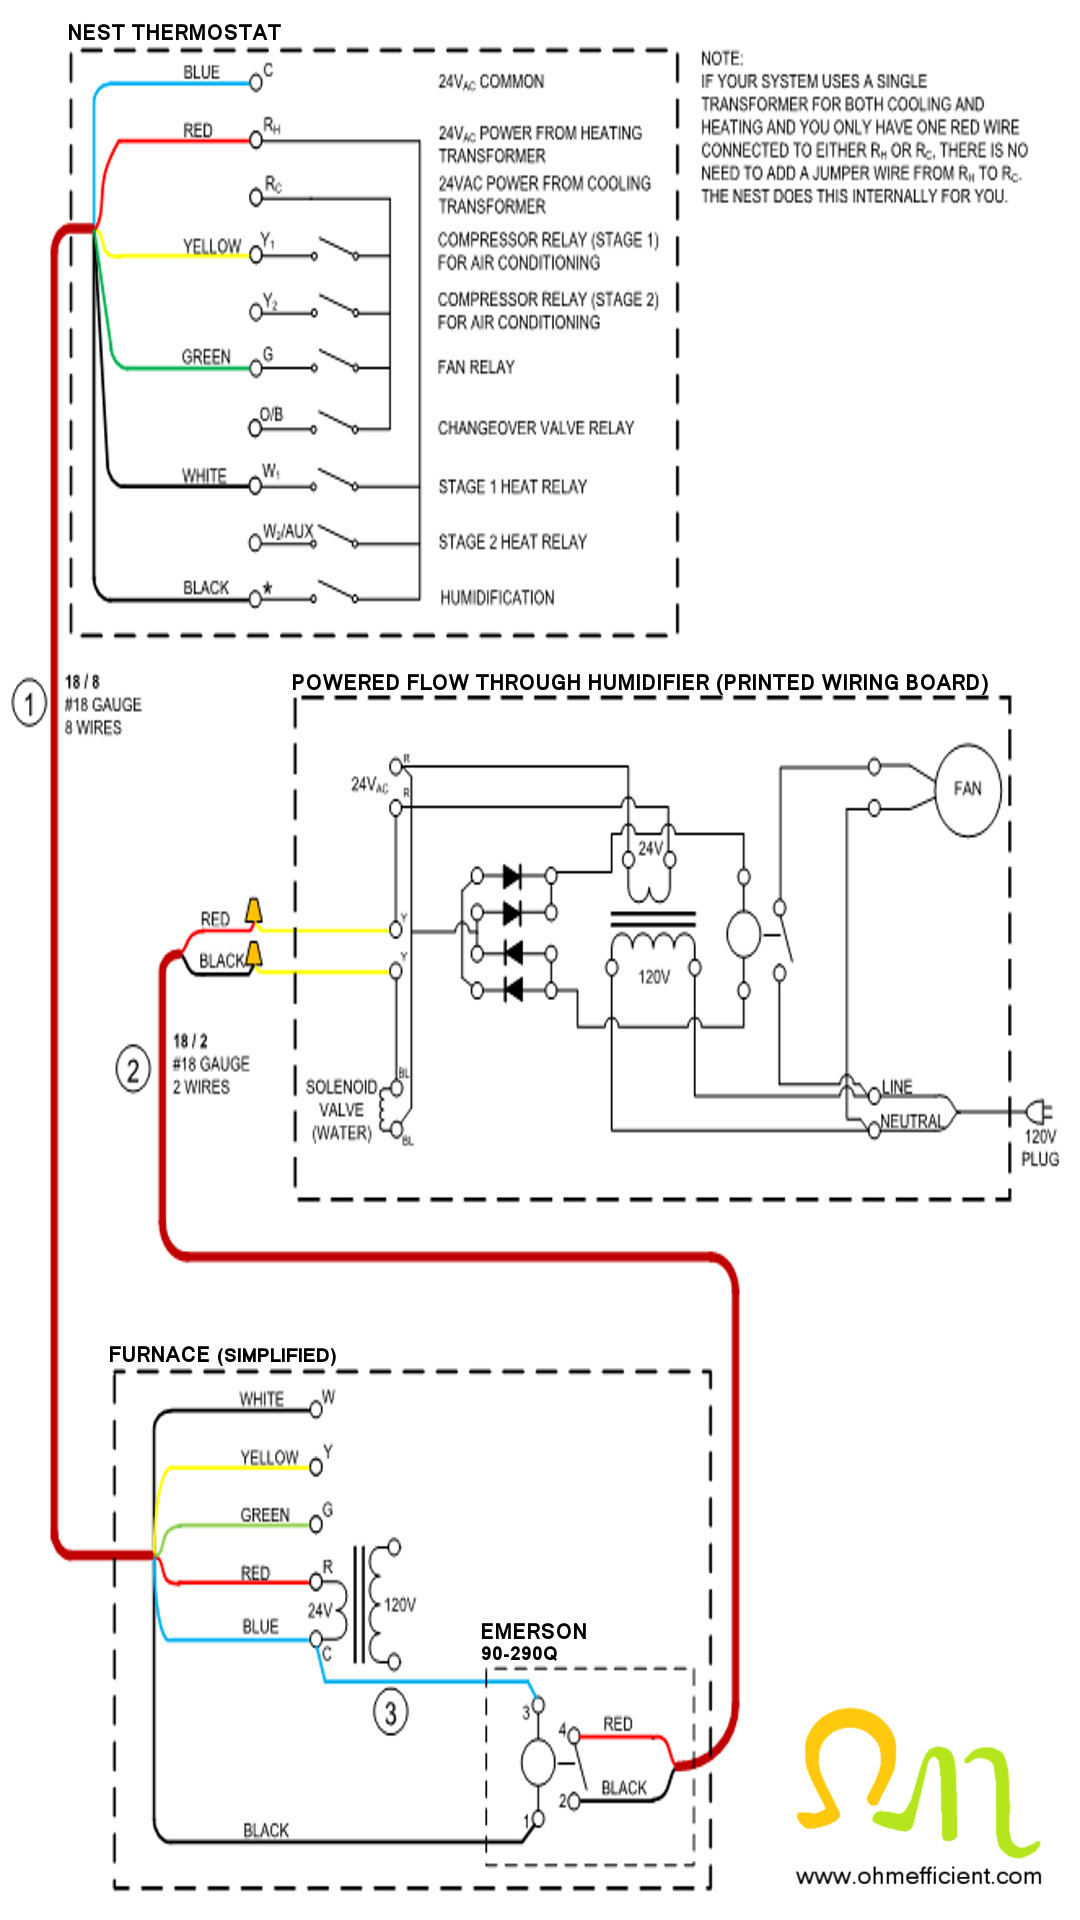 Wiring Diagram For Humidifier - Data Wiring Diagram Today - Nest Thermostat 4 Wiring Diagram